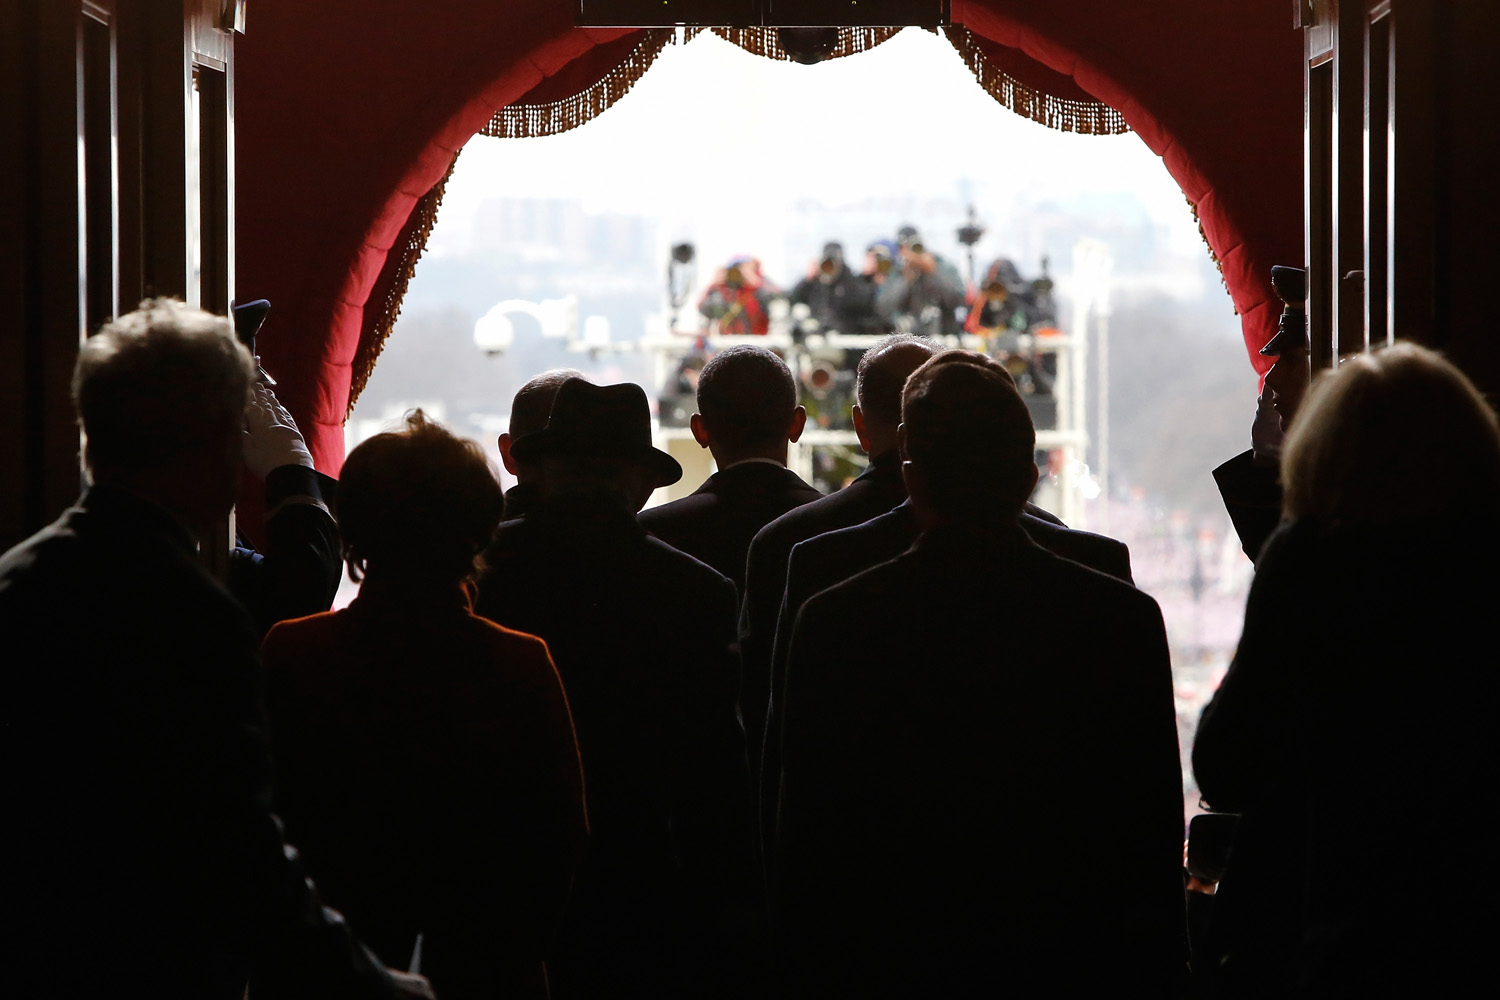 Jan. 21, 2013. U.S. President Barack Obama (C) pauses with his escorts before walking through the Lower West Terrace Door of the US Capitol to begin swearing-in ceremonies in Washington.